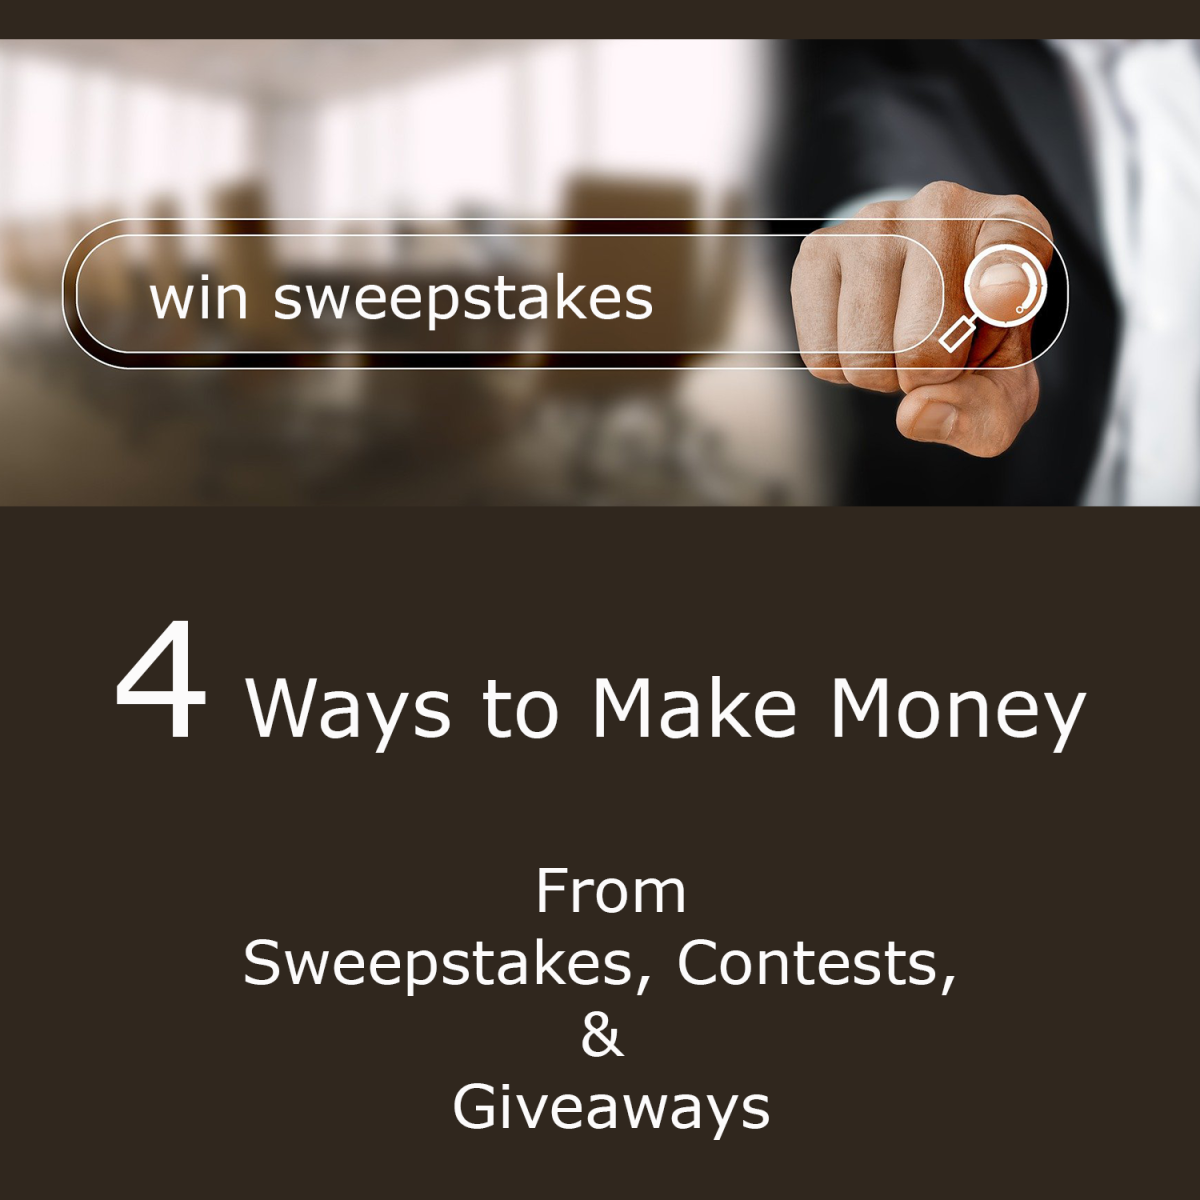 4 Ways to Make Money From Sweepstakes, Giveaways and Contests